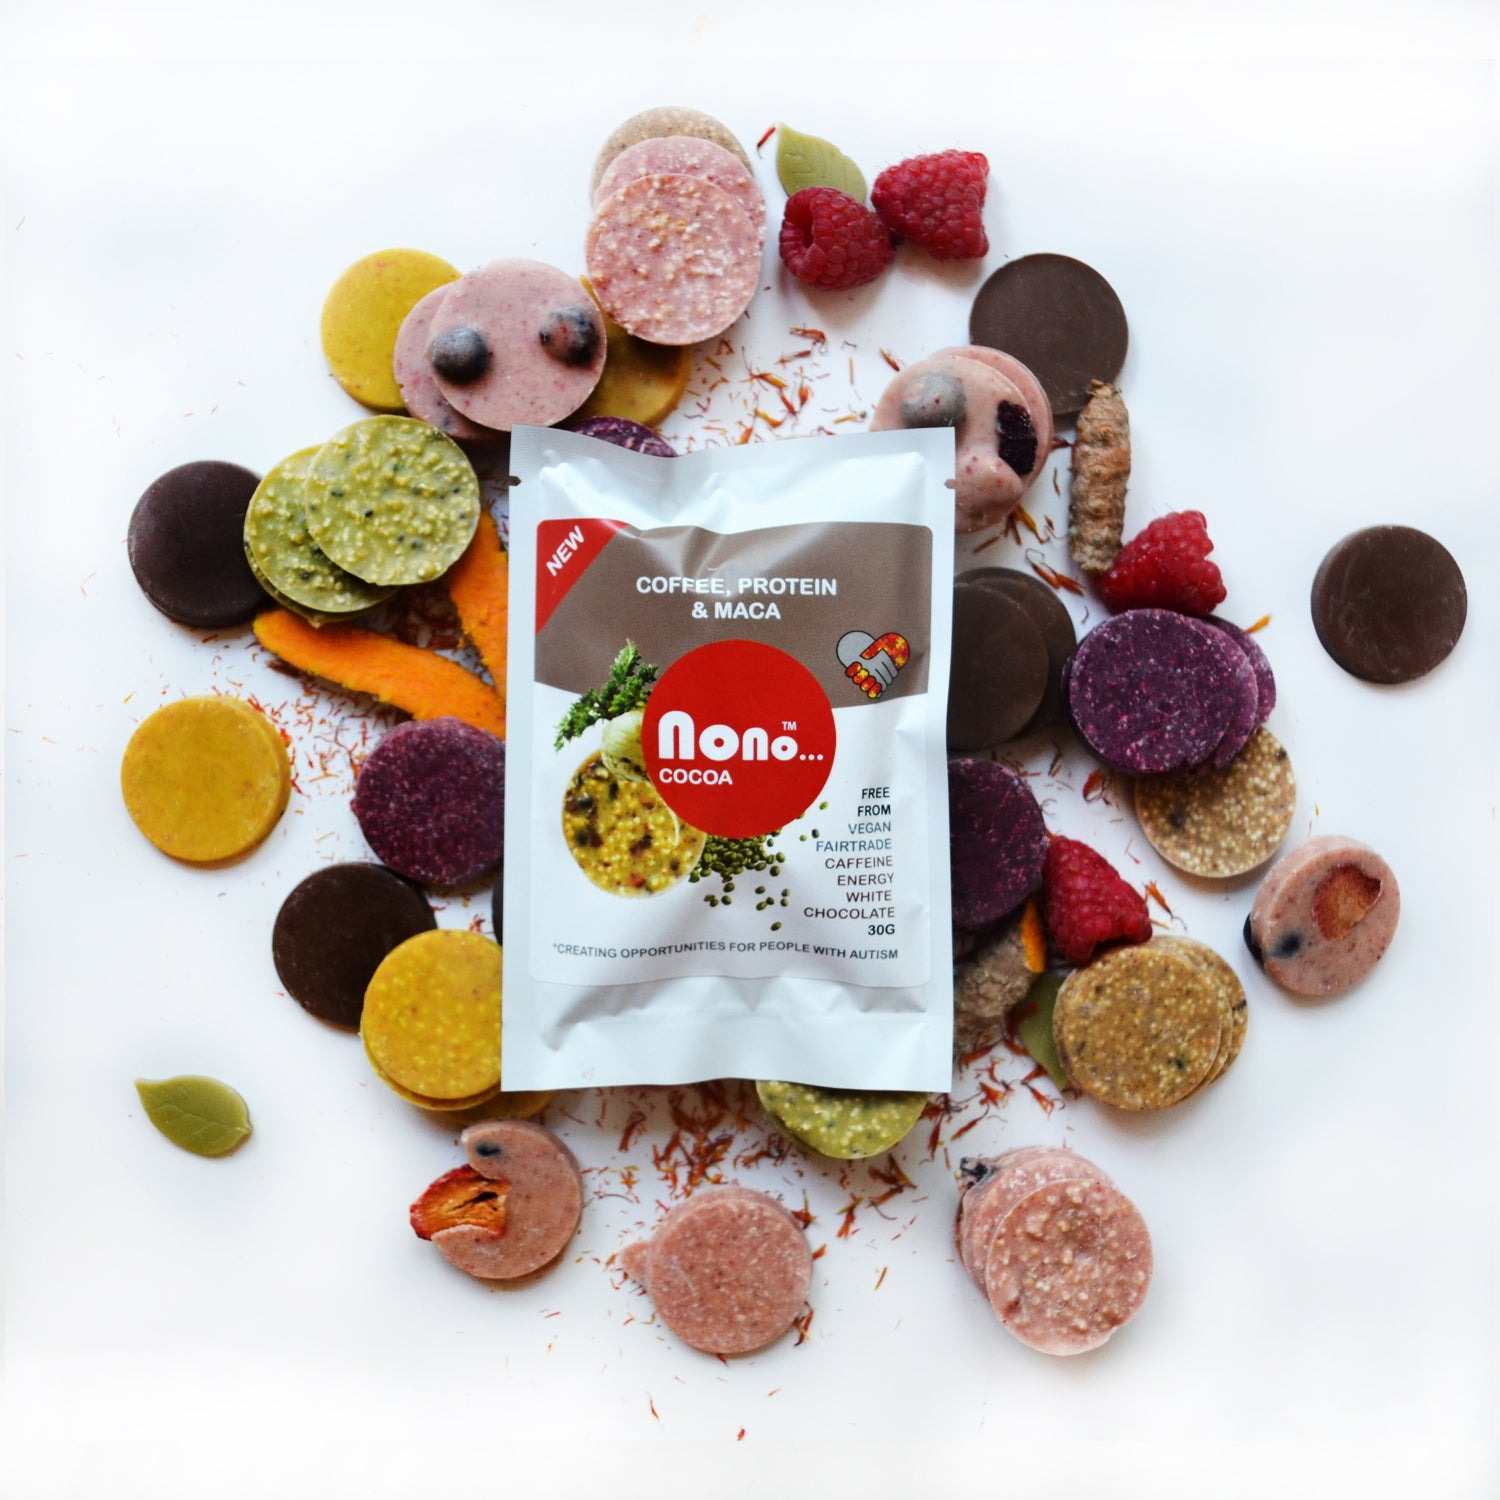 NEW Nono Cocoa Chocolate Snacks - GREEN COFFEE, PROTEIN & MACA